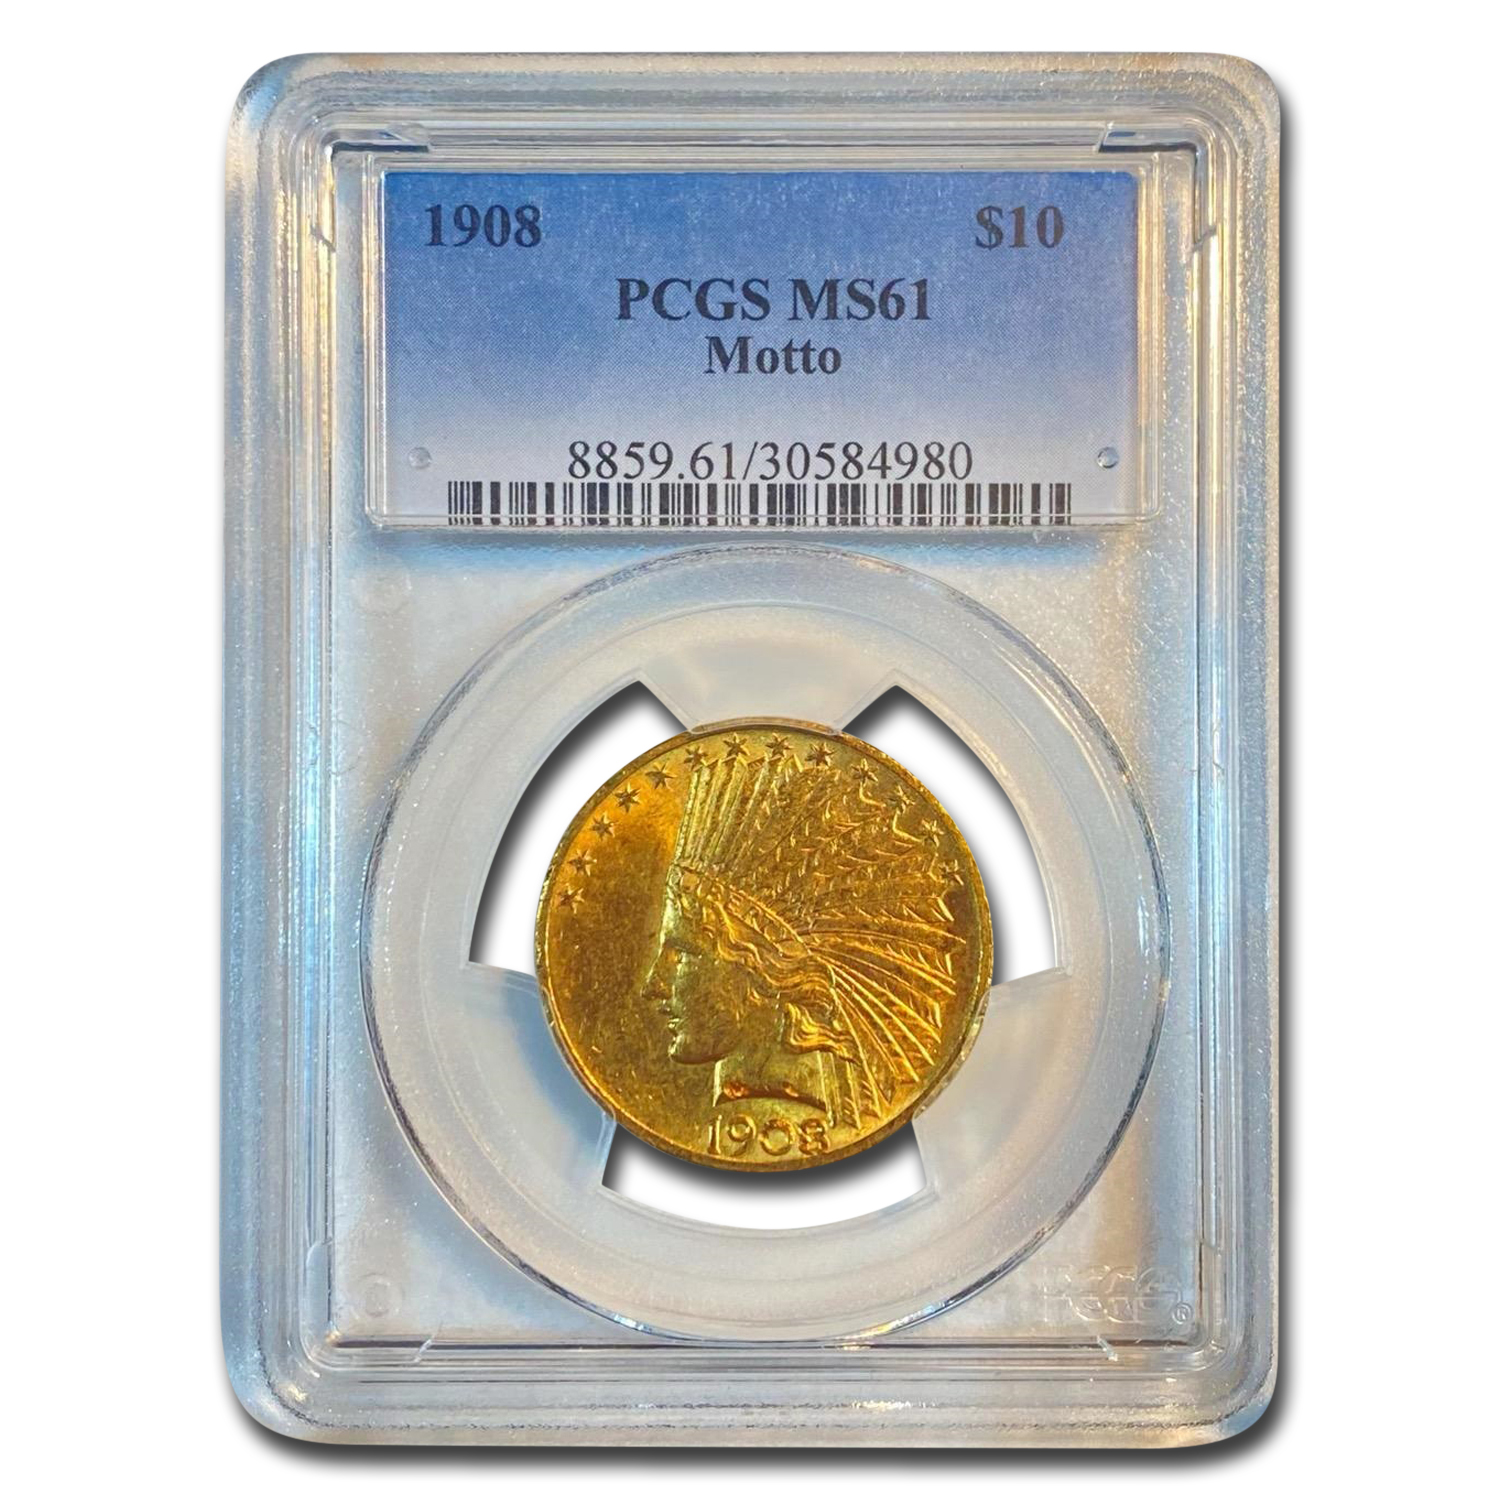 1908 $10 Indian Gold Eagle - With Motto - MS-61 PCGS